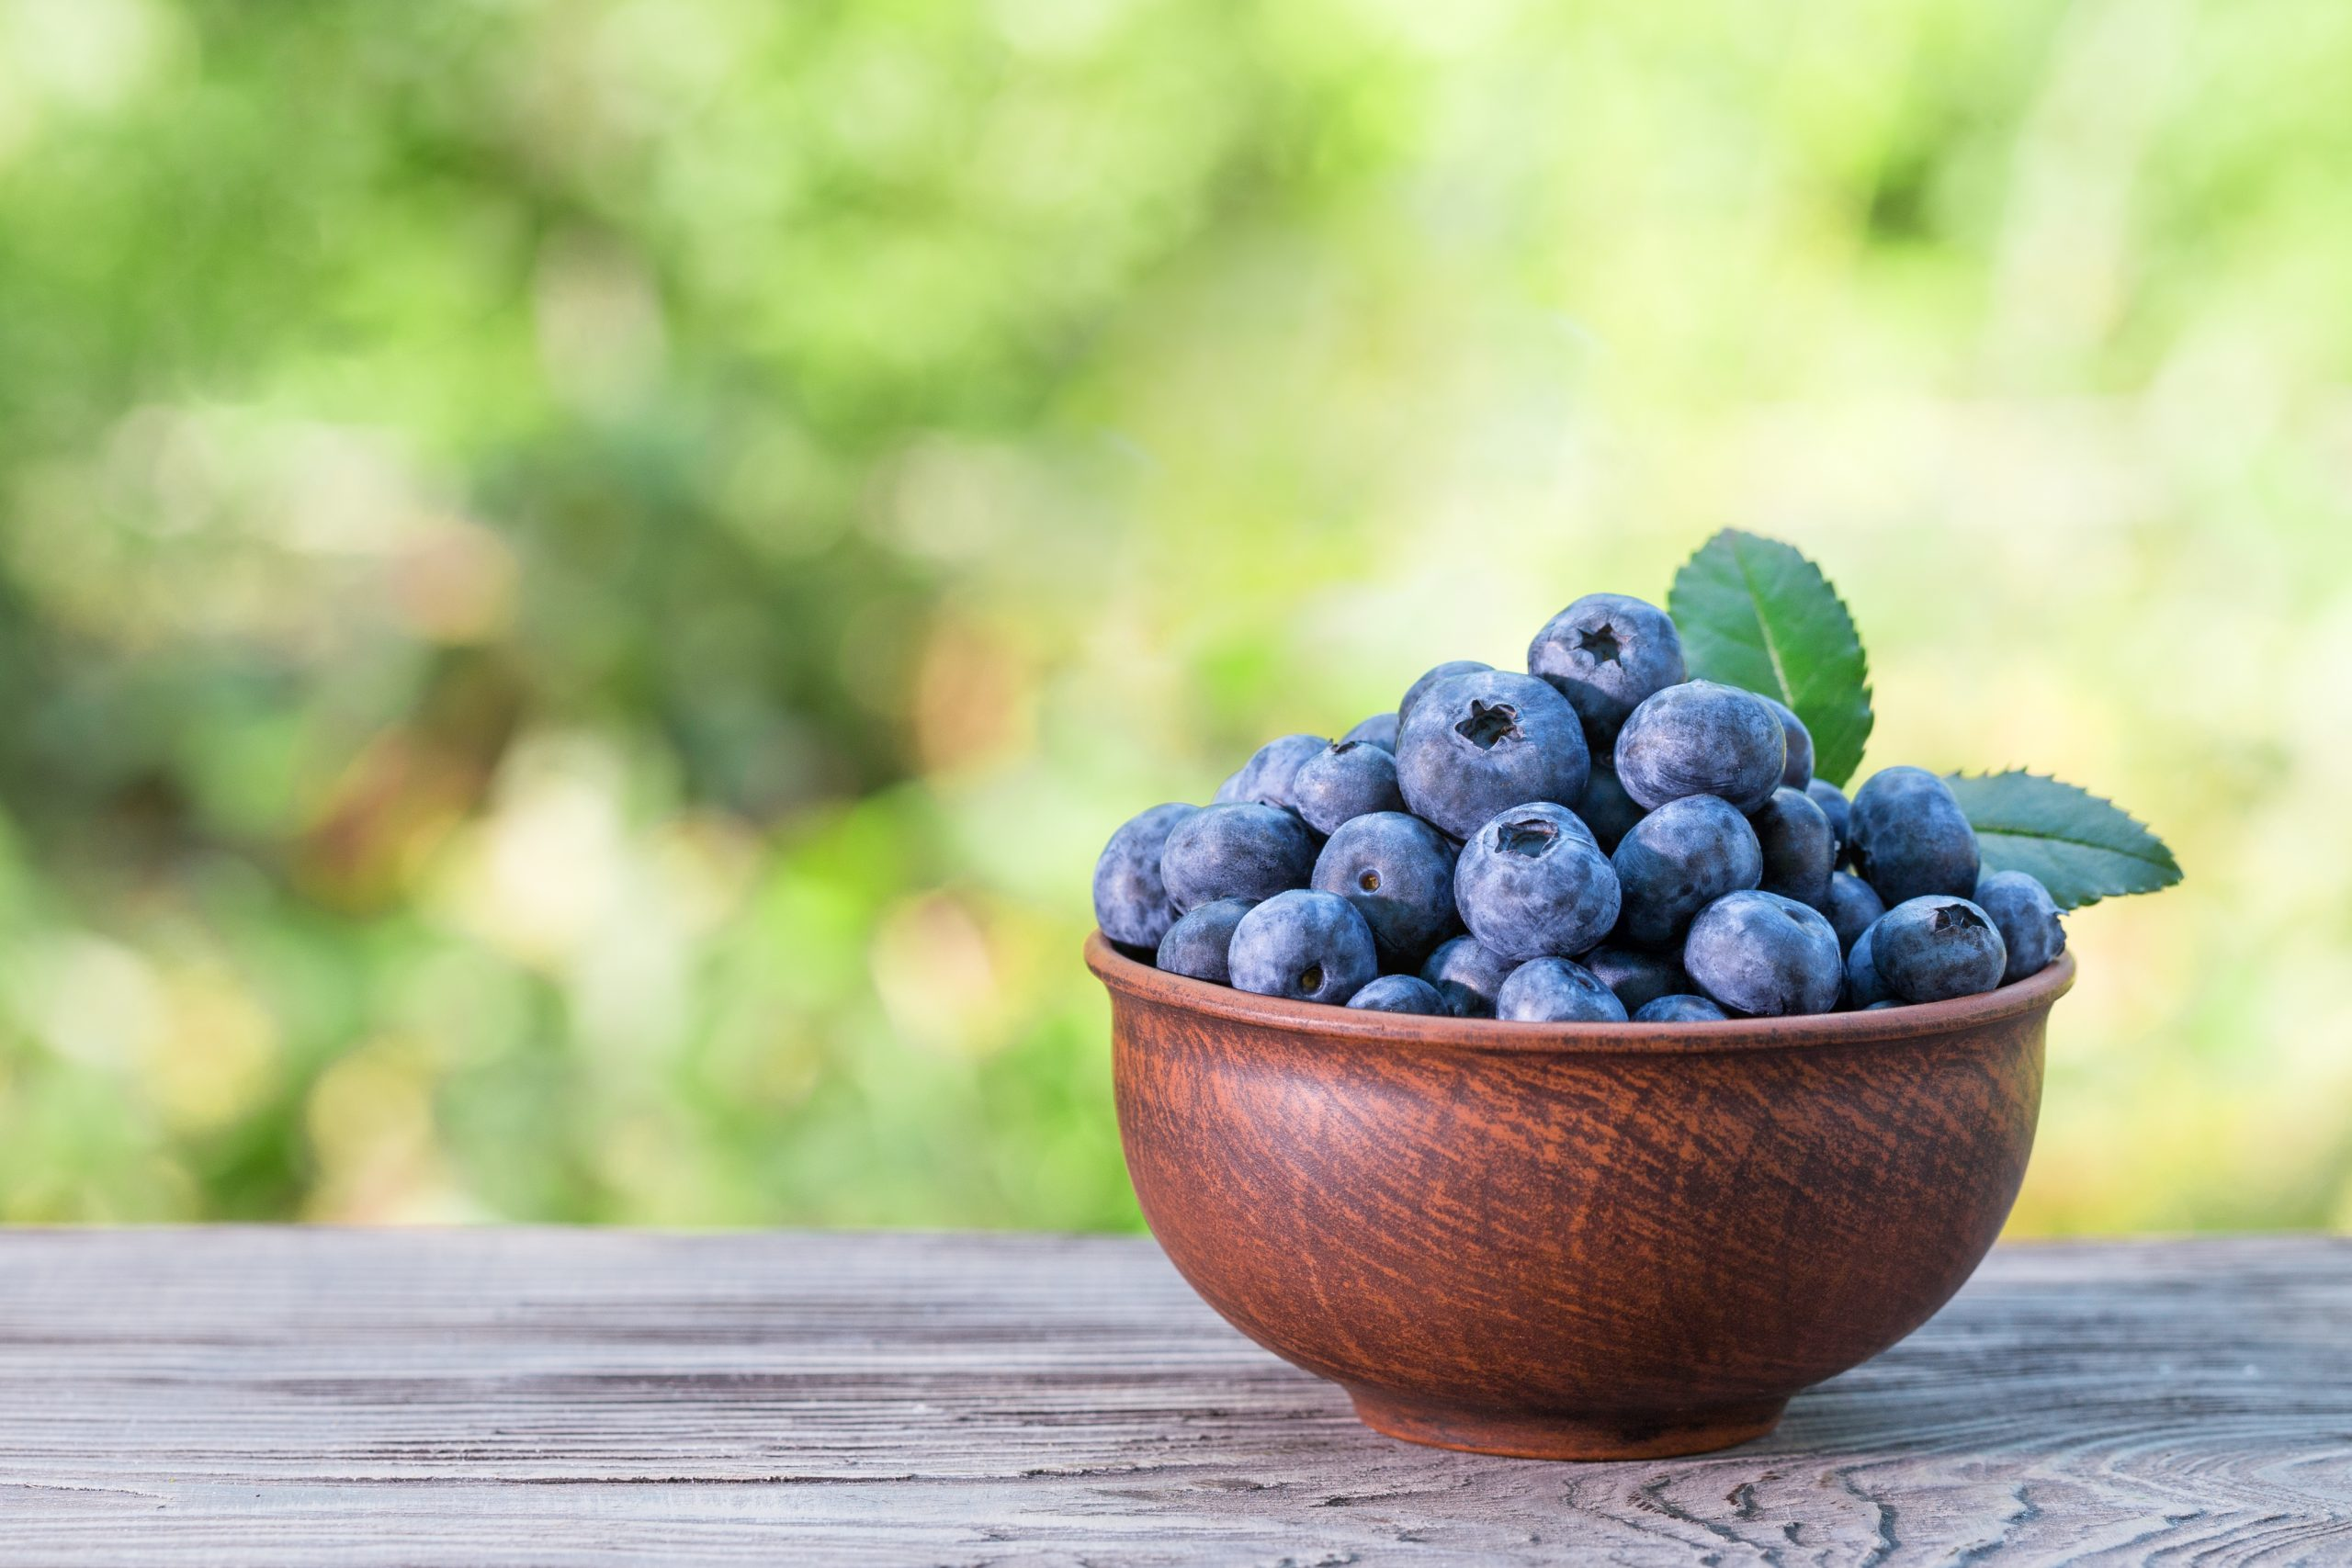 Blueberries in clay bowl on a wooden table. Green natural background. Summer still life. Natural product and harvest concept